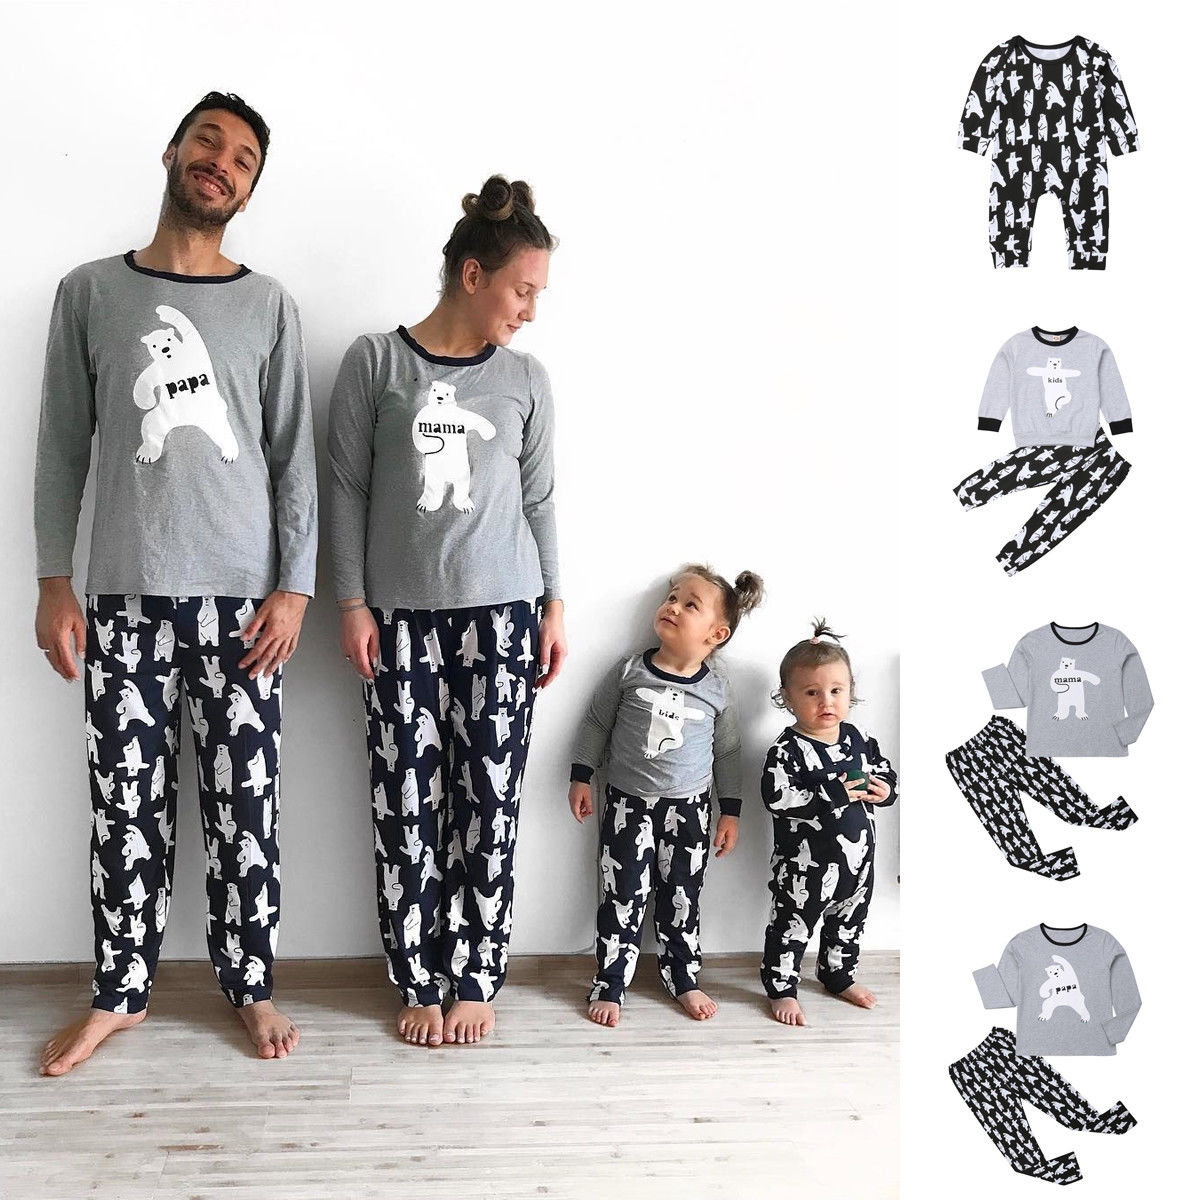 Christmas Informal Household Matching Pajamas Set Girls Males Child Youngsters Bear Print Sleepwear Nightwear Autumn Winter Garments